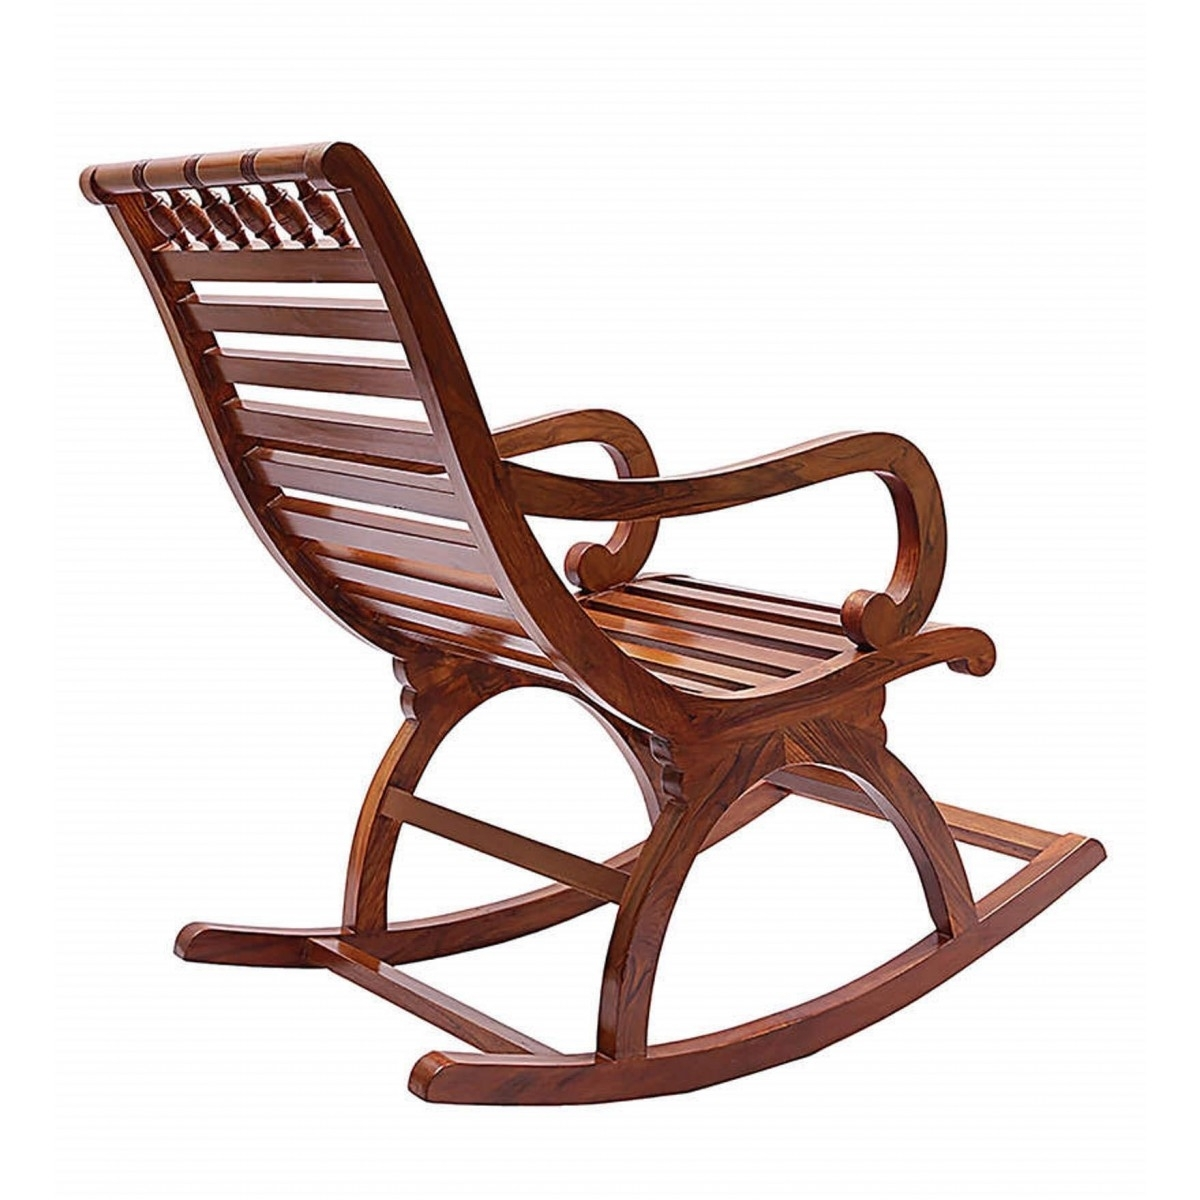 Newest Rocking Chairs Online  Shop Wooden Rocking Chair At Here !! With Helms Arm Chairs (#12 of 20)